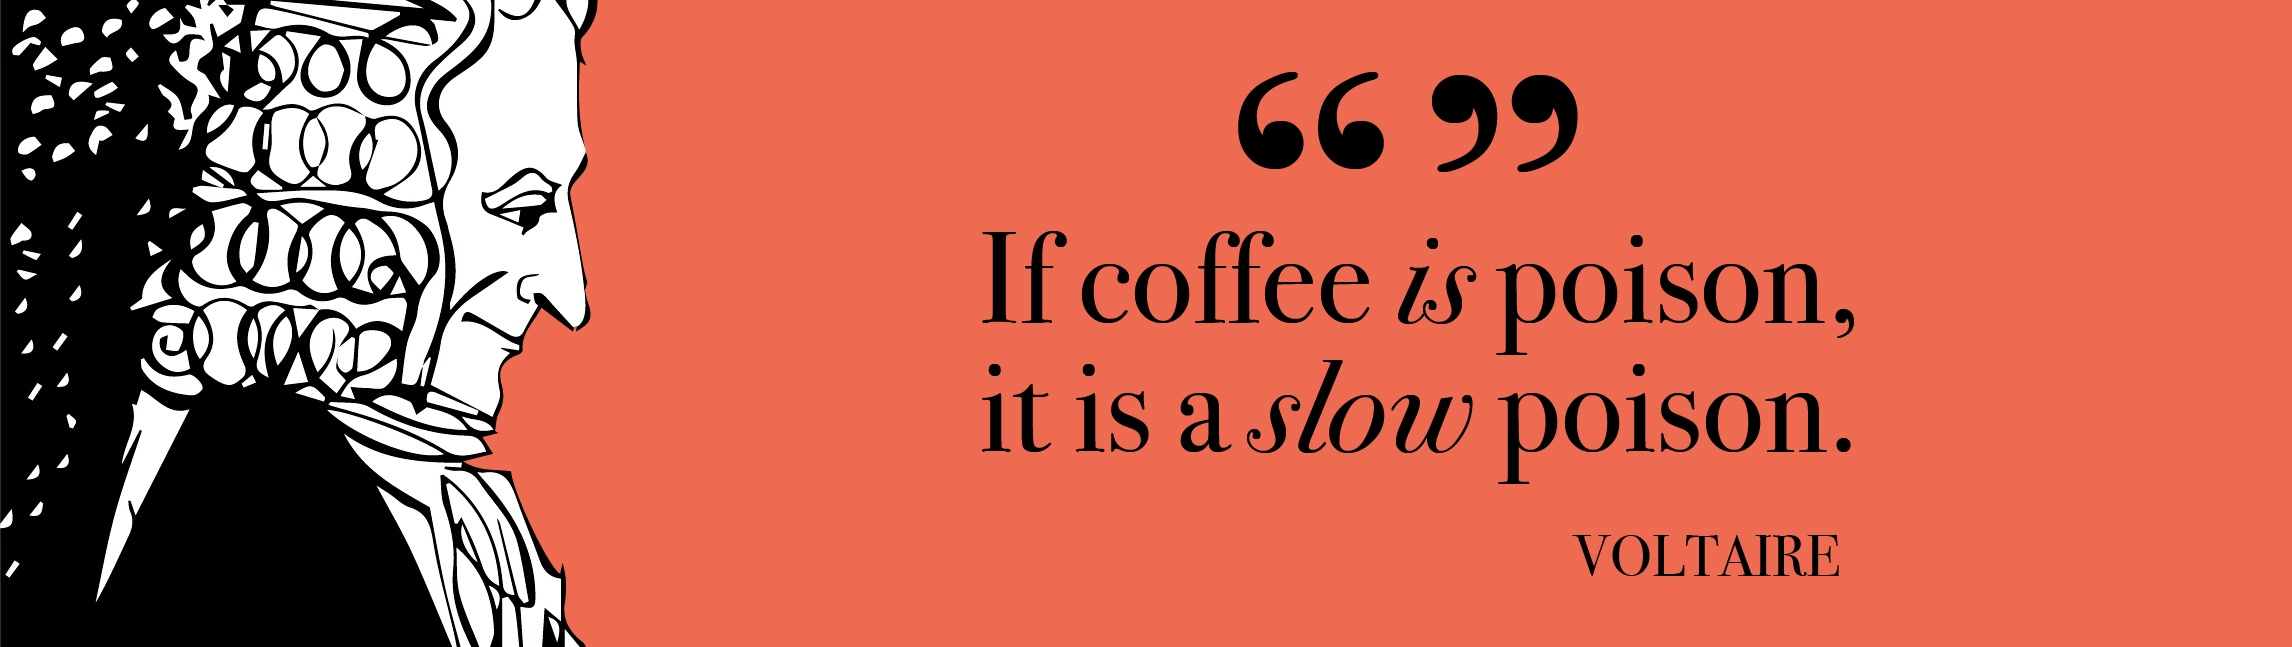 If coffee is poison, it is a slow poison.